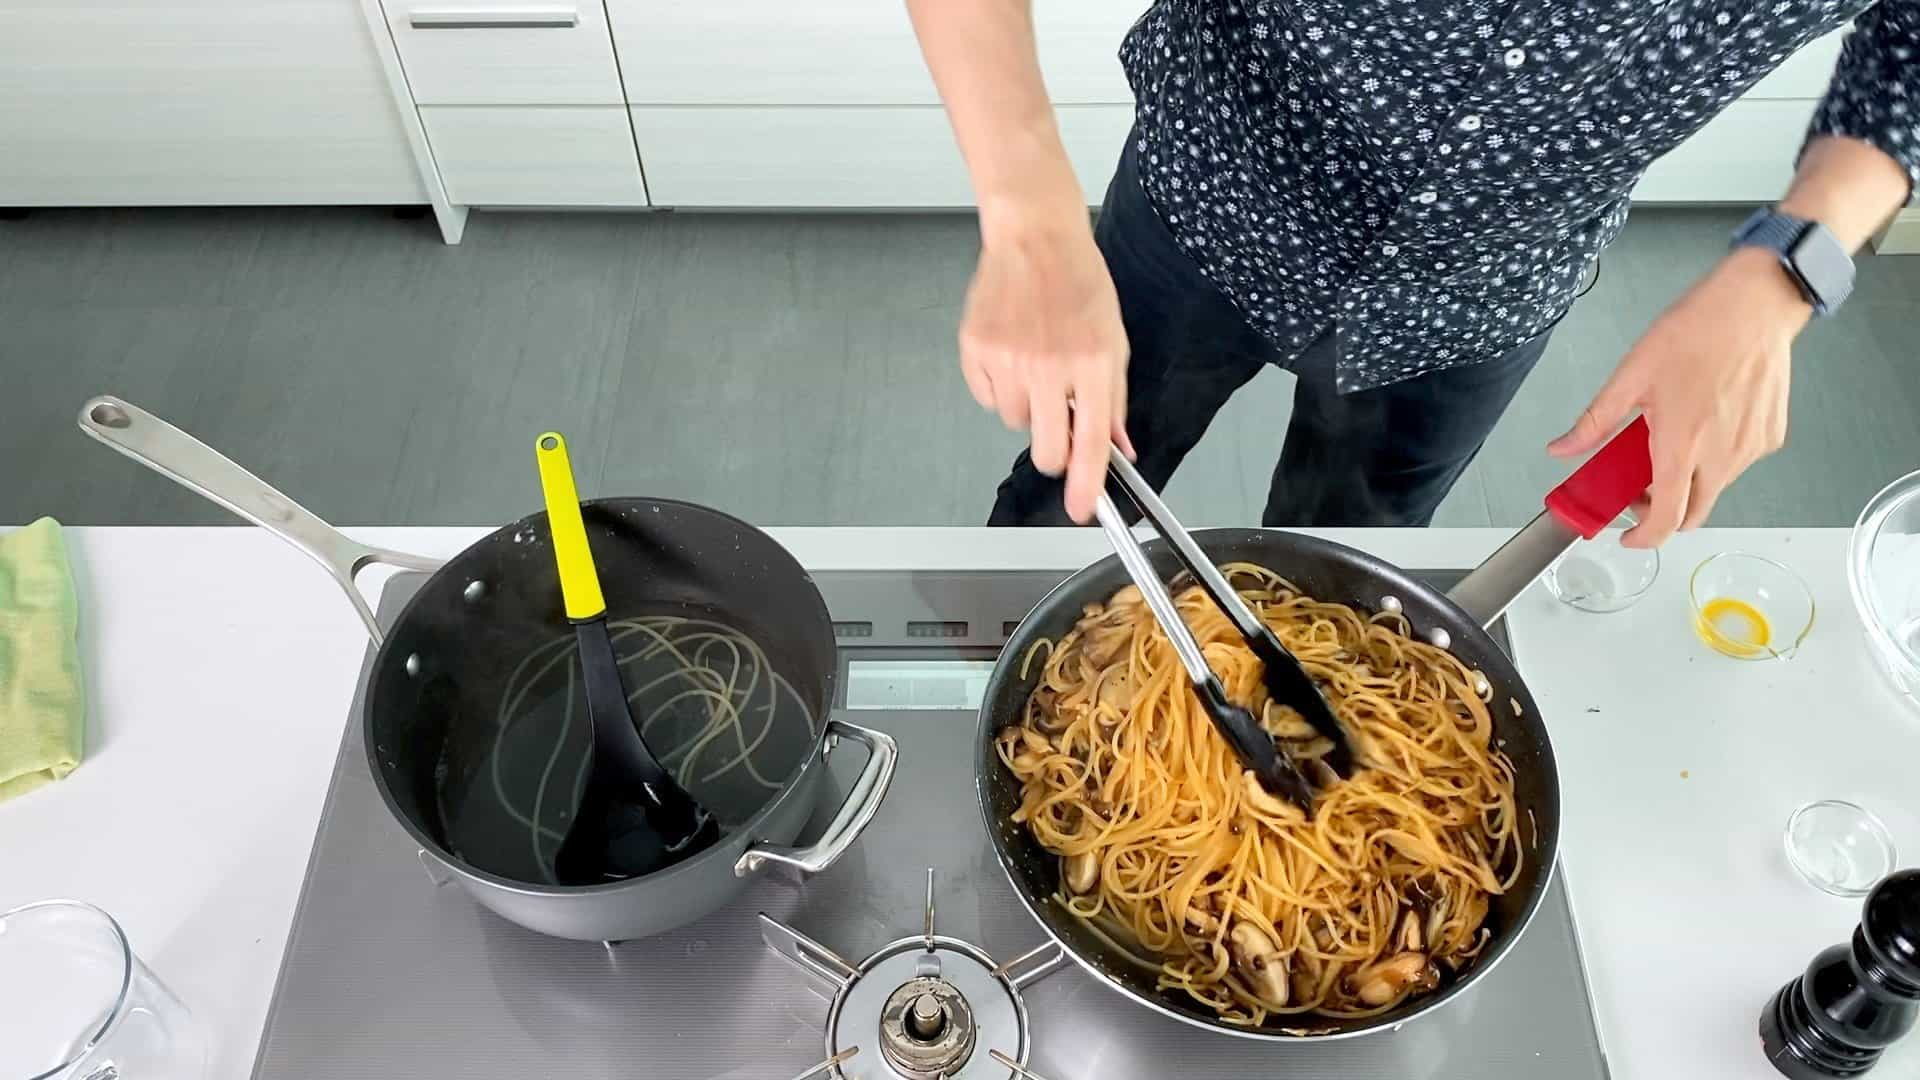 Tossing mushrooms, butter and soy sauce with pasta.